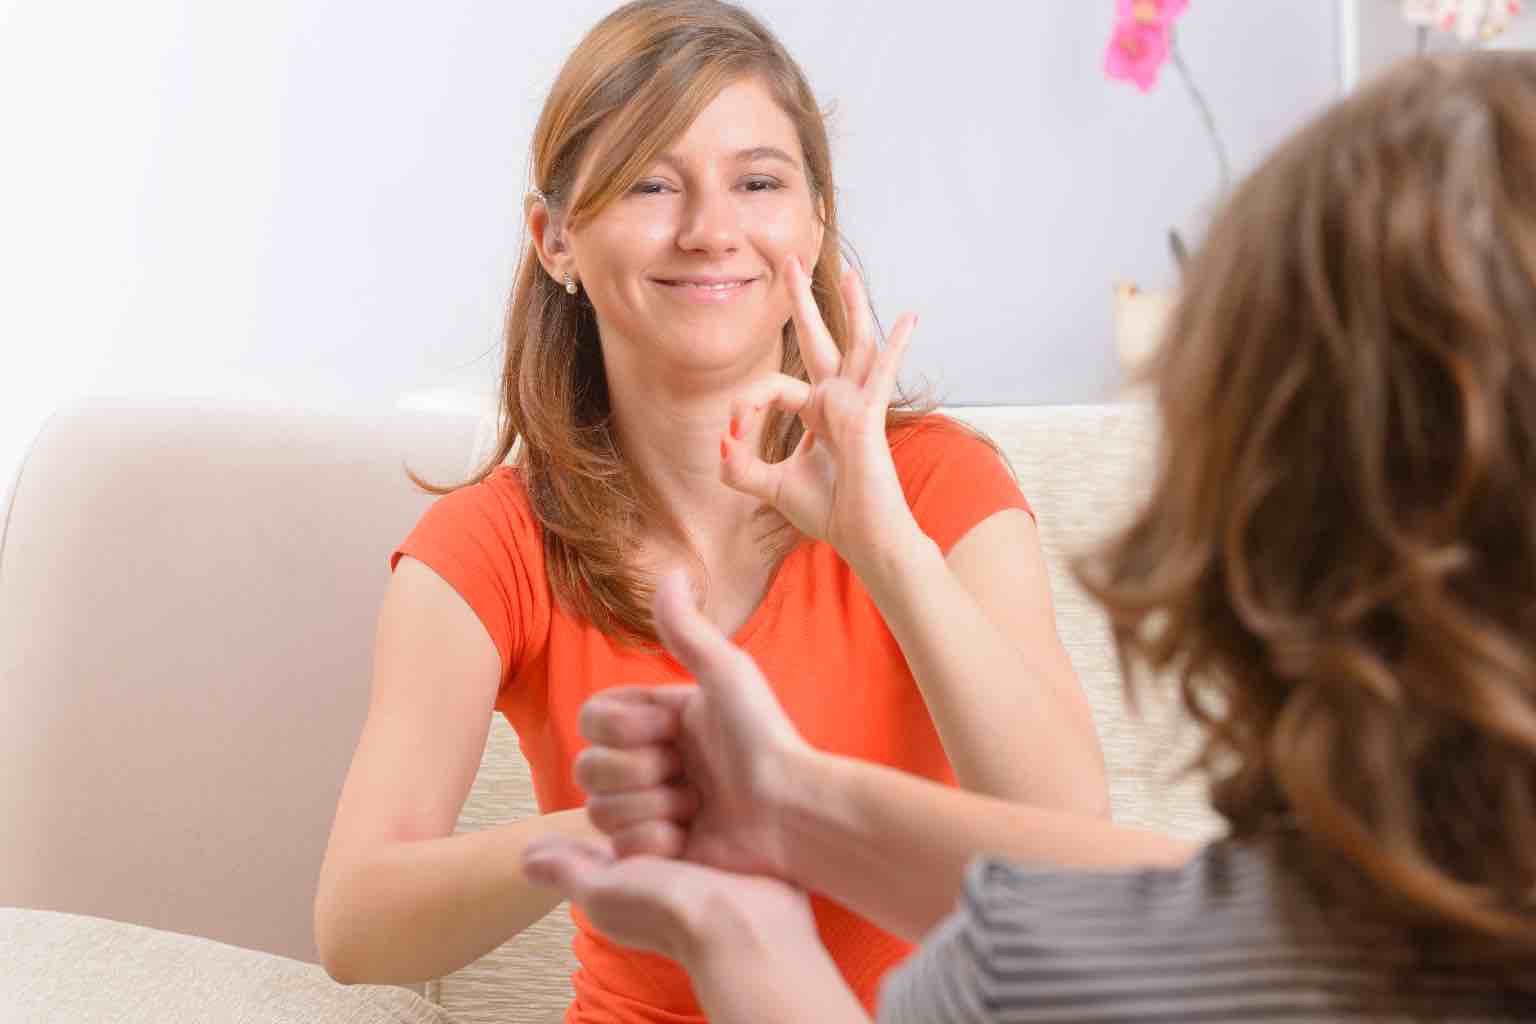 Two women conversing in a lounge room using sign language